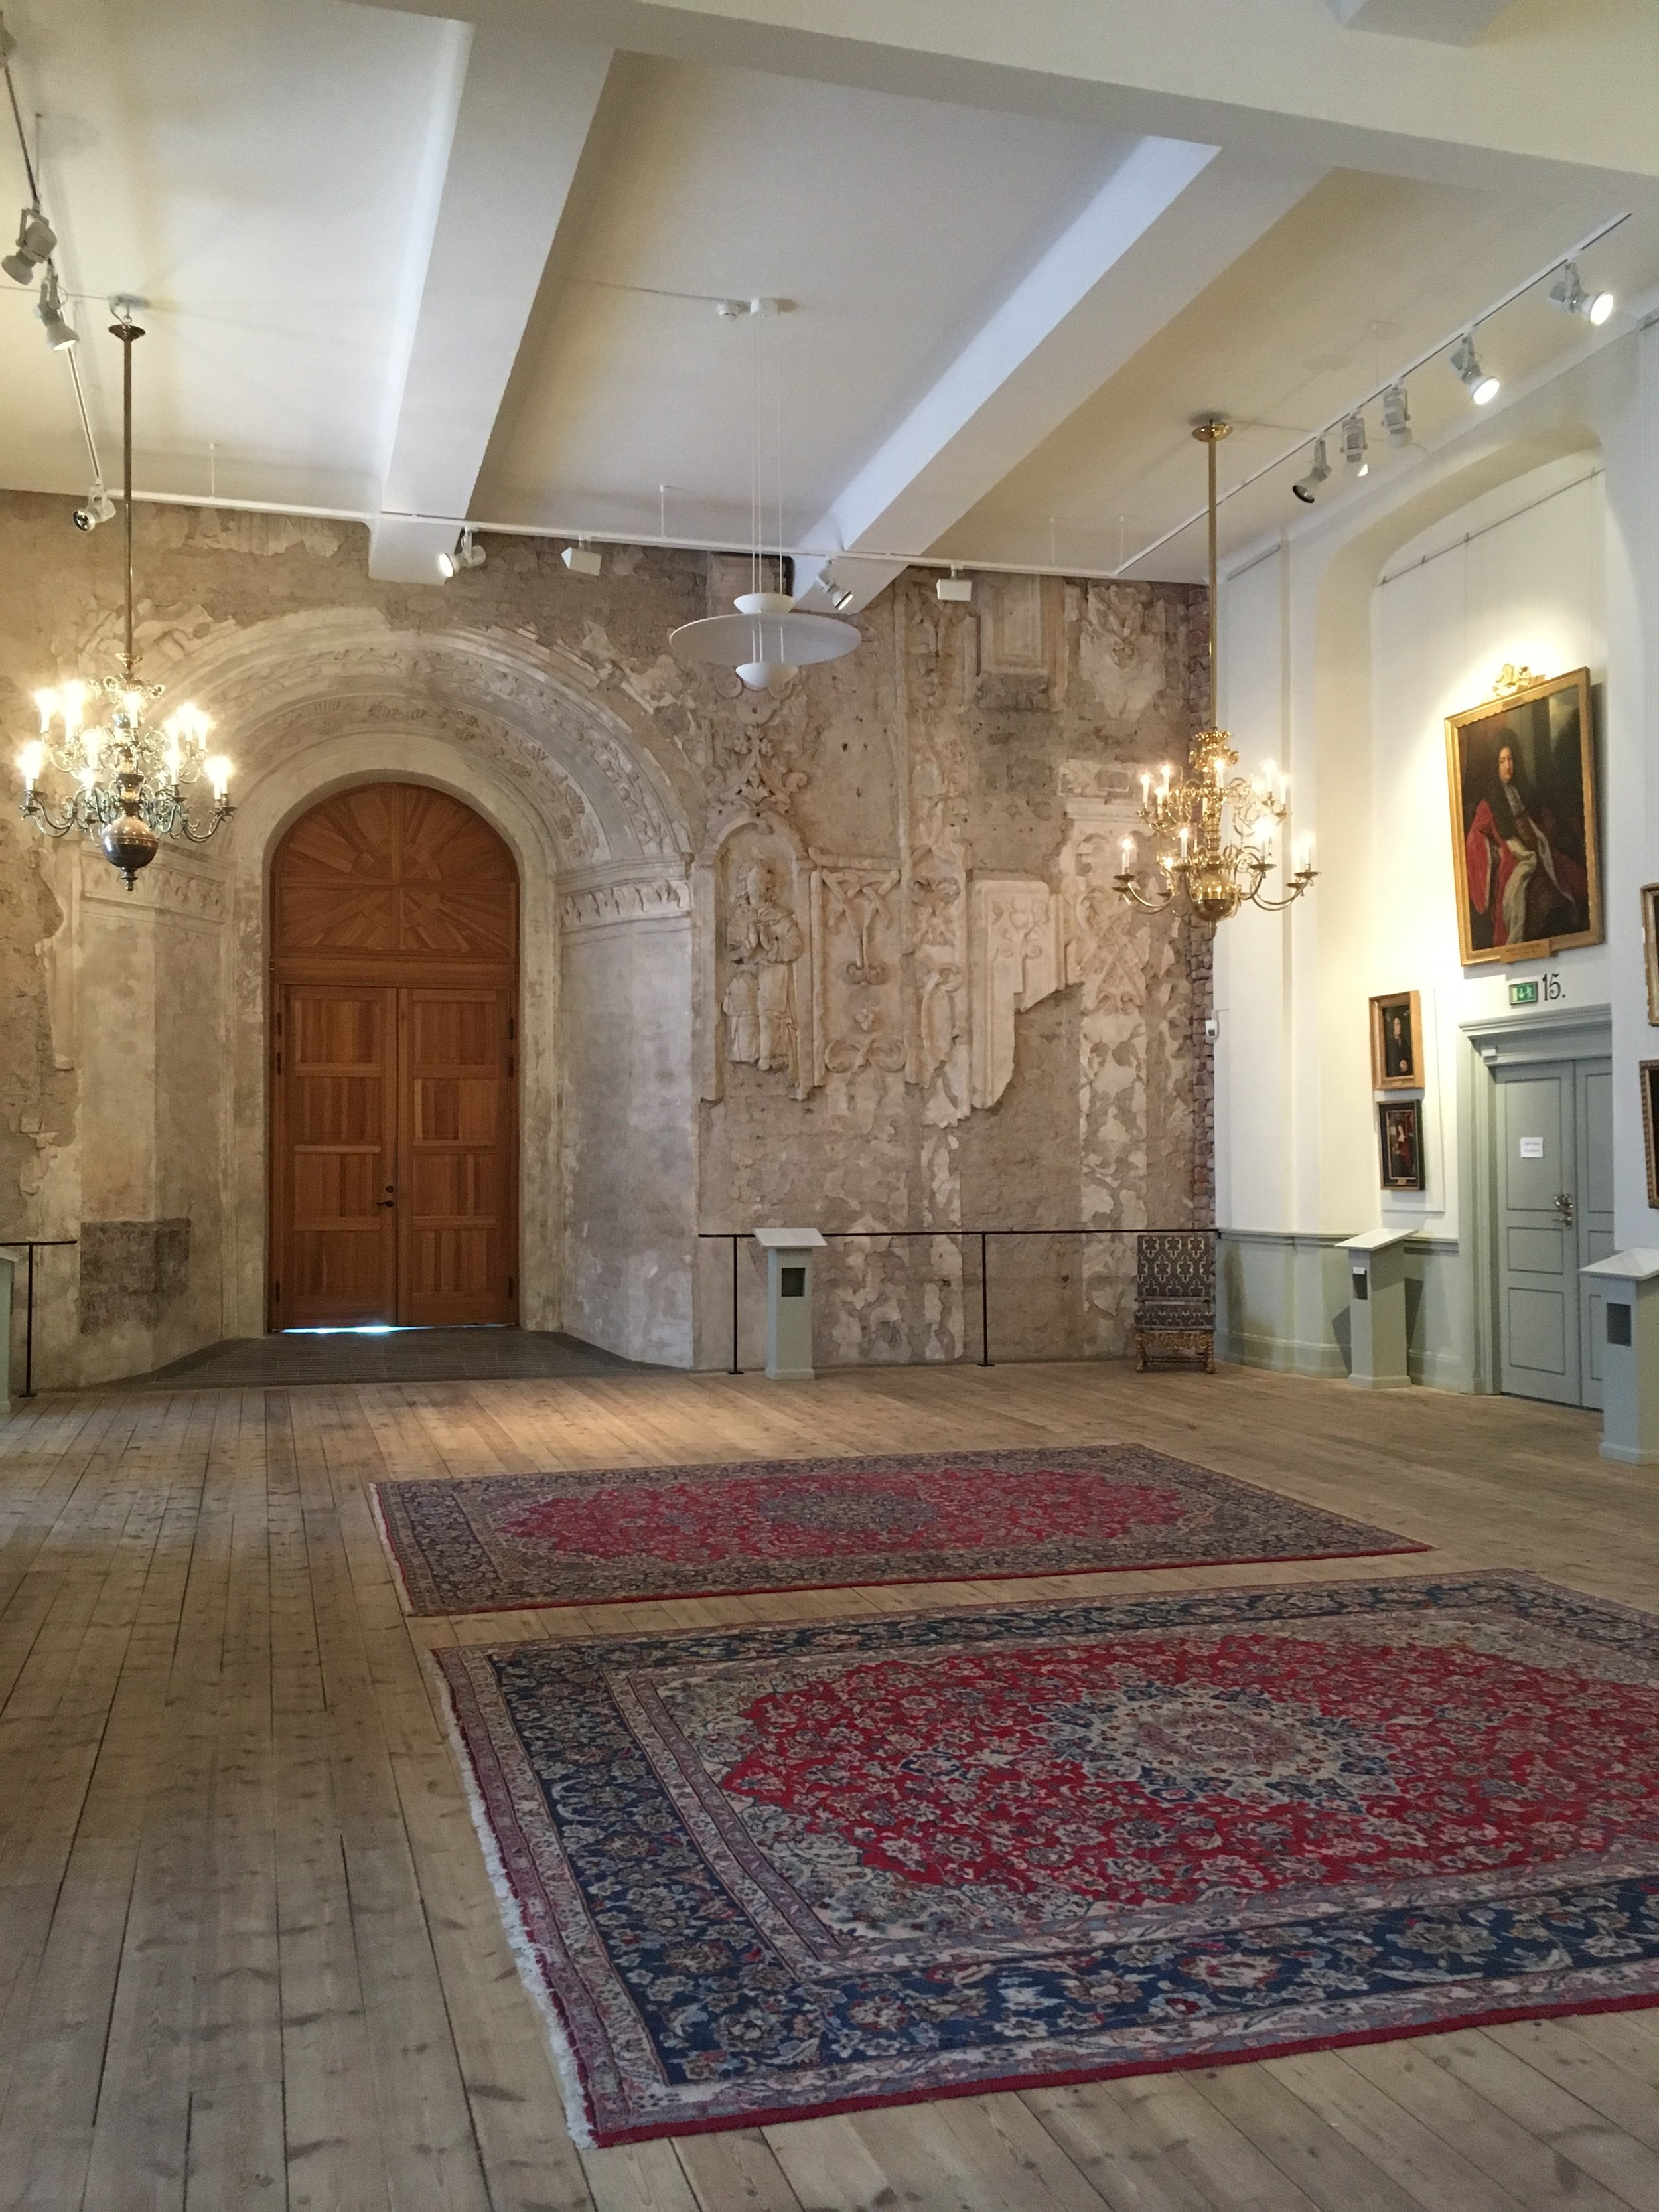 The decorative carvings are what remains of the old Castle Chapel that used to be in this wing. Over the years the Chapel was repurposed and extra floors and walls were built into the space. Country Governor's festive venues are on the other side of the wall.